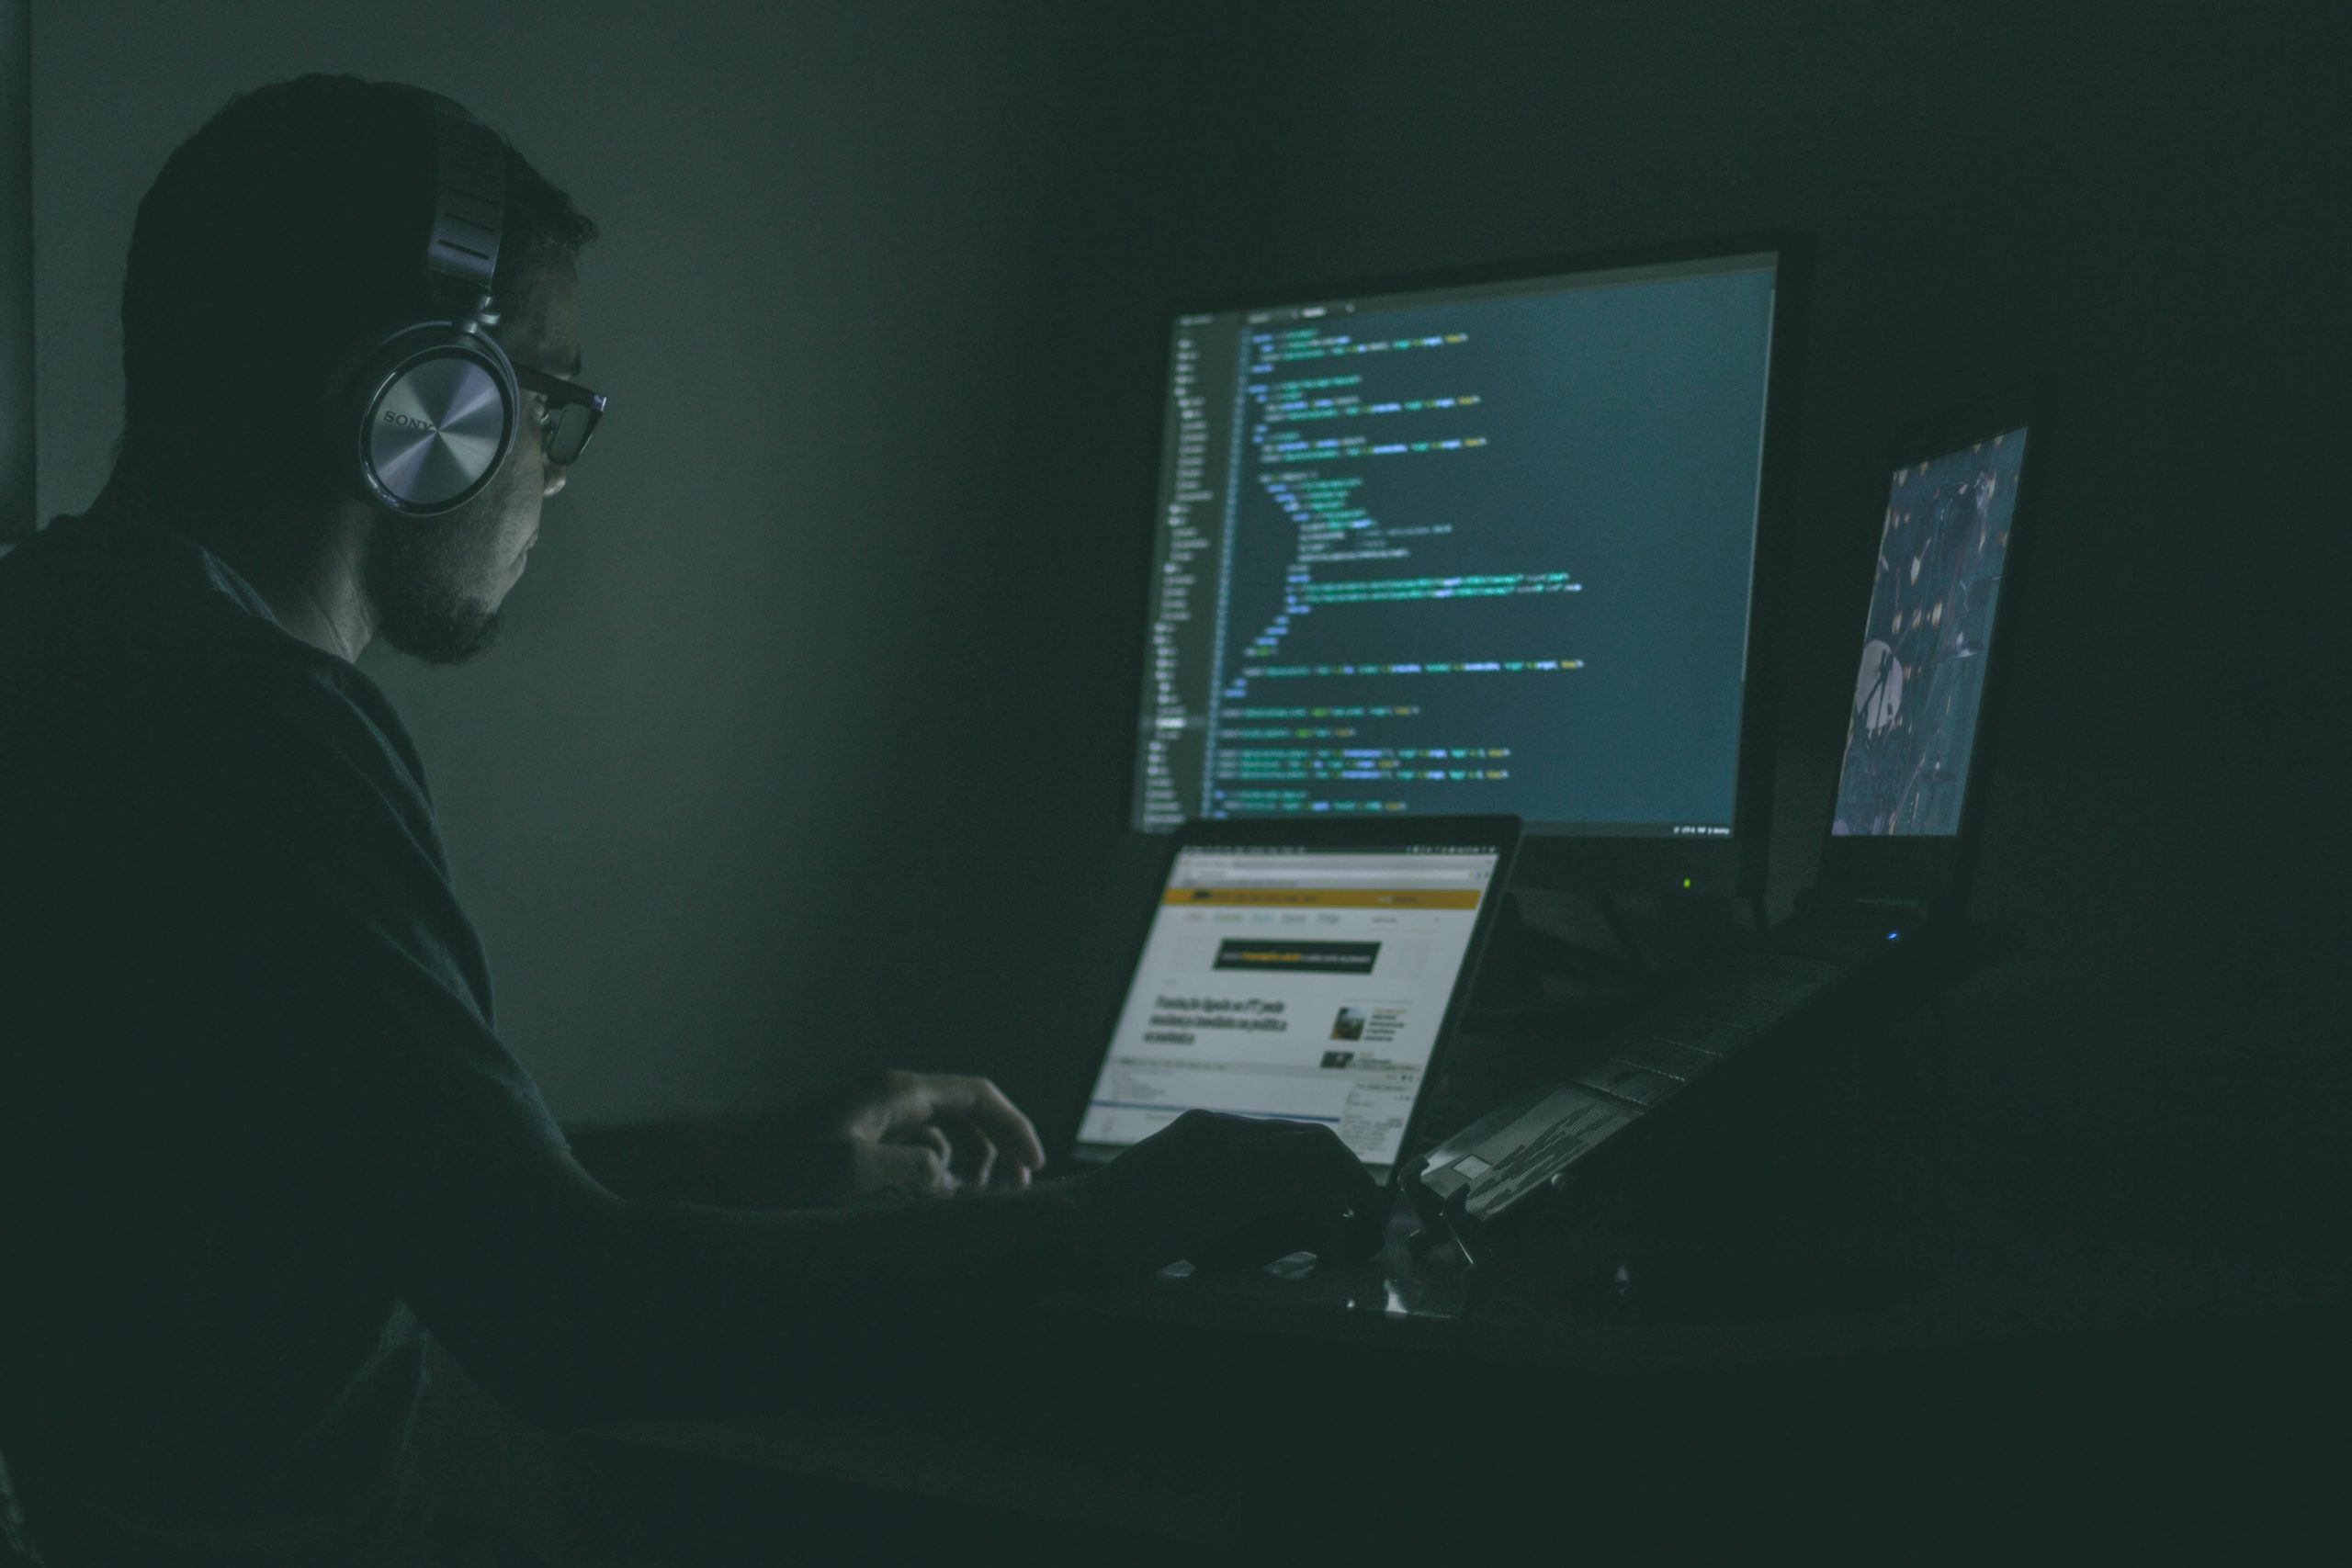 A detailed review about cyber security